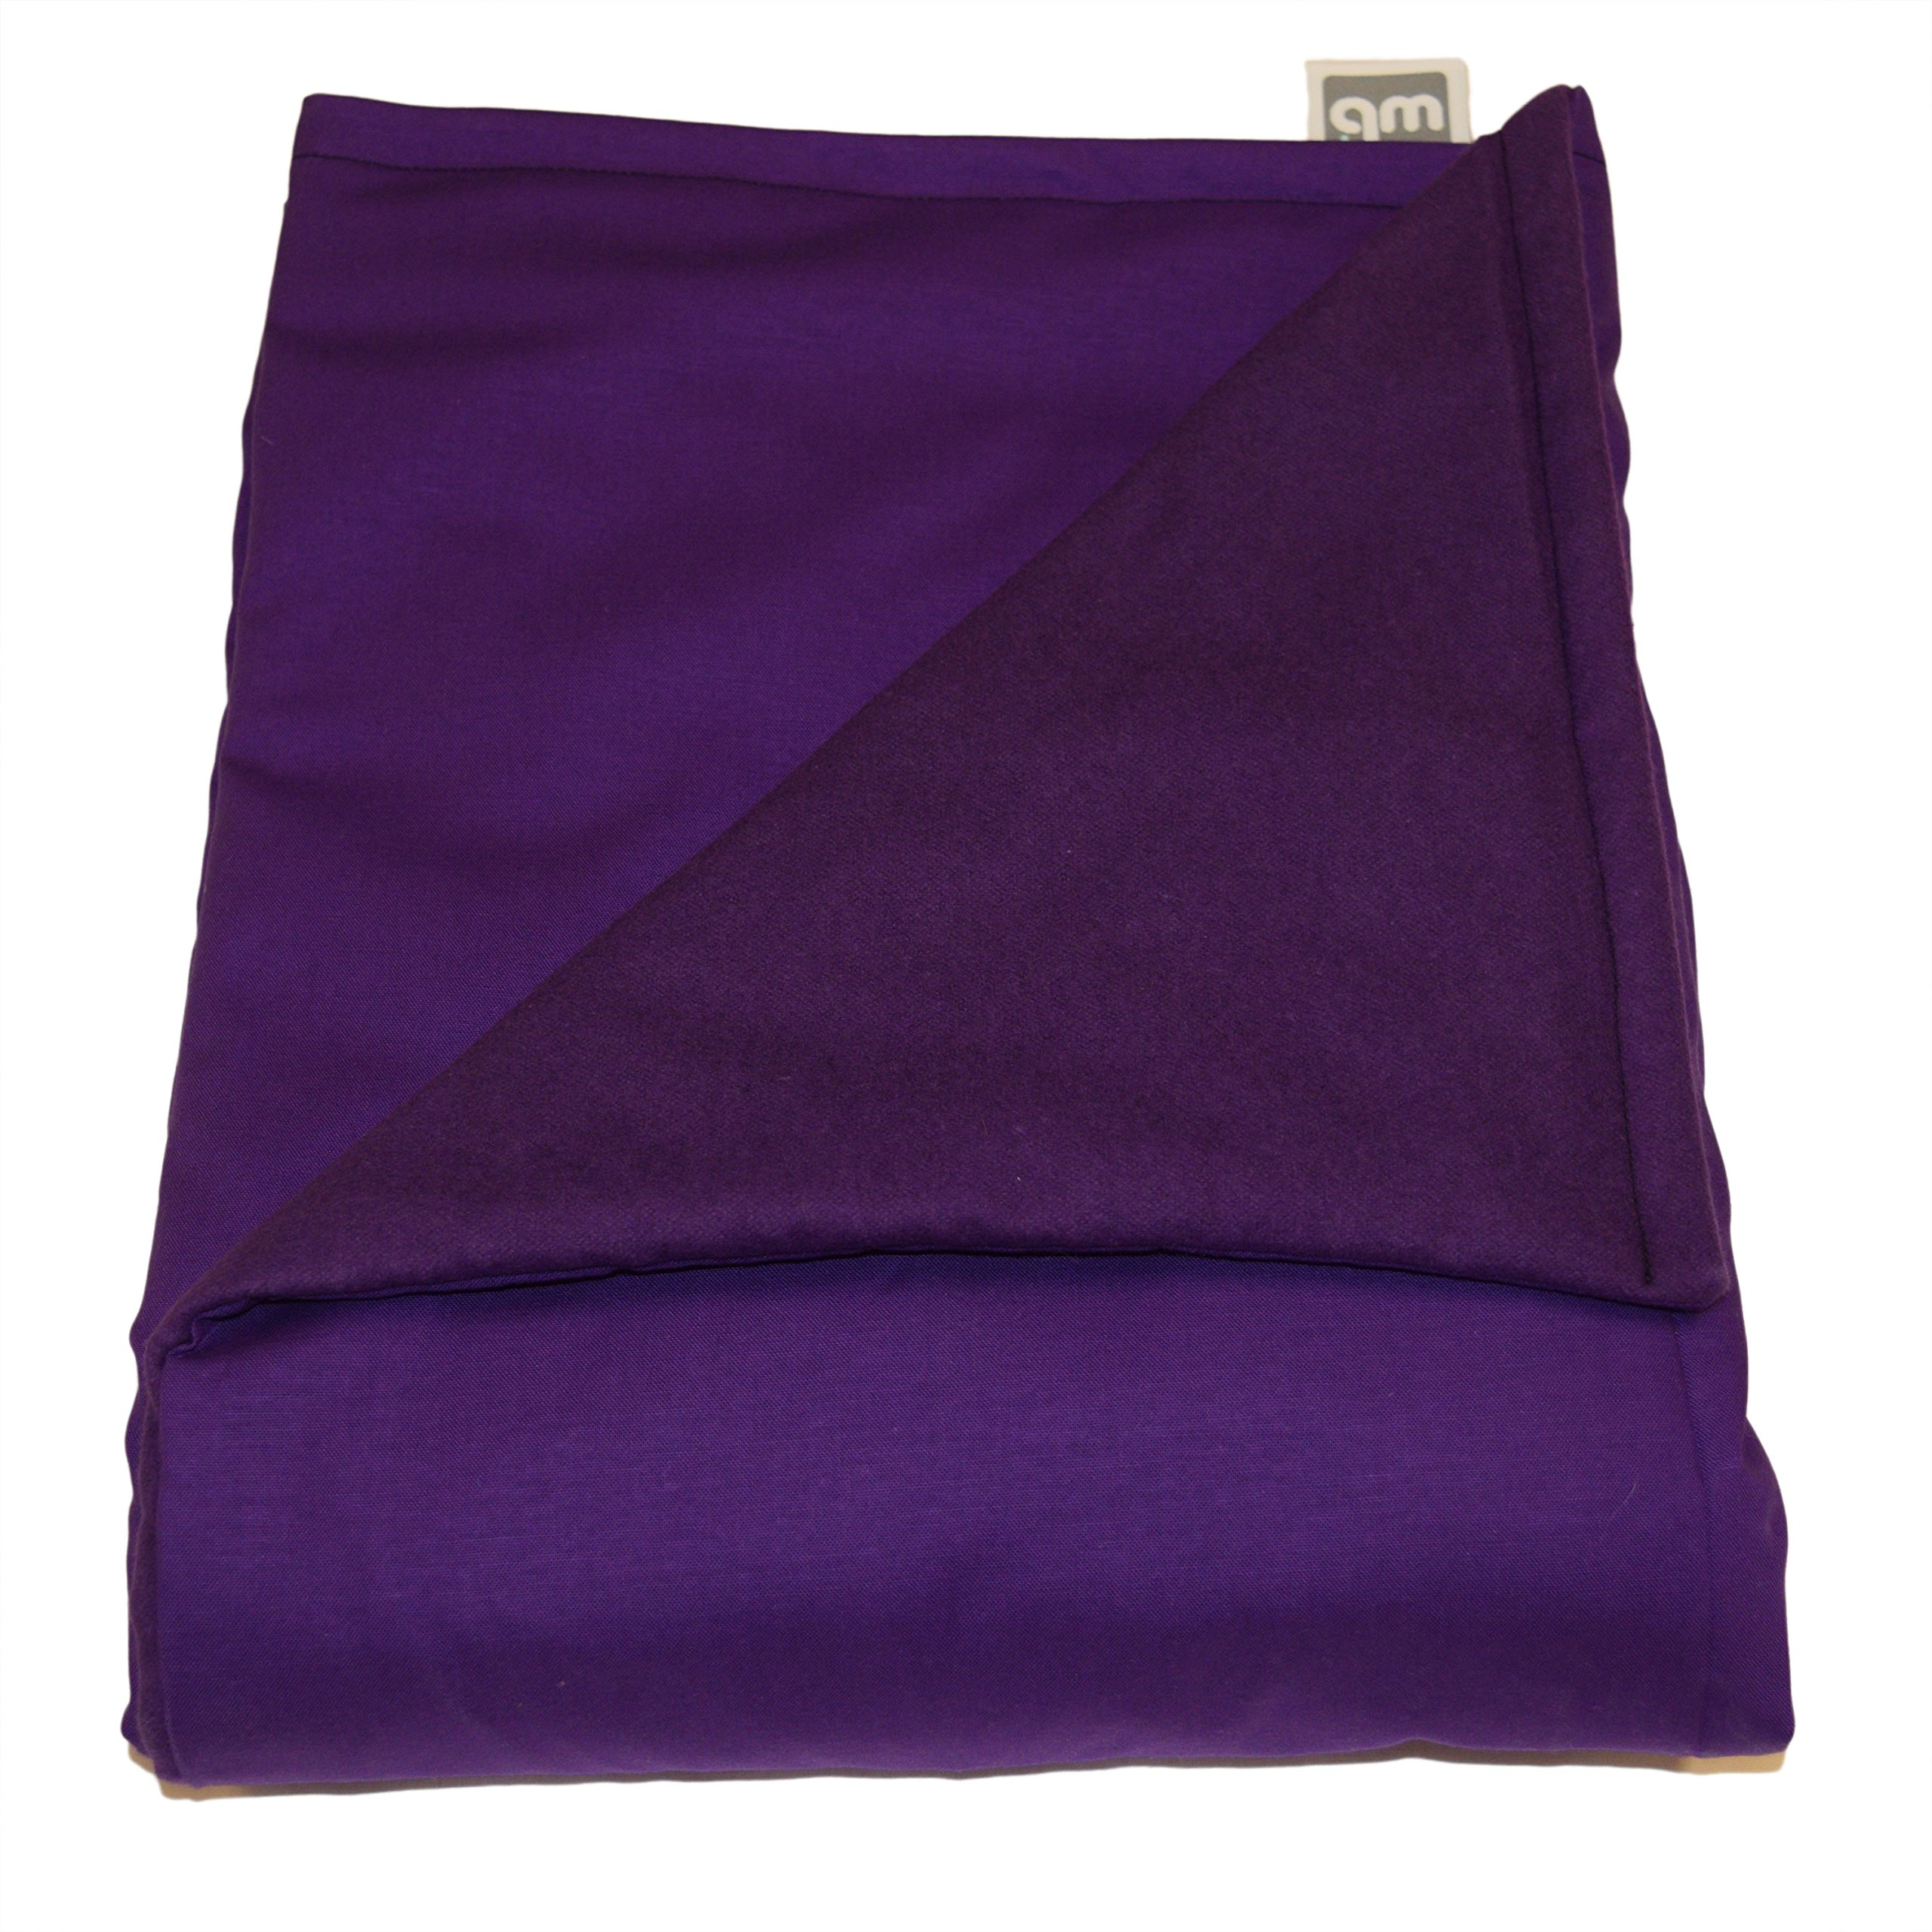 WEIGHTED BLANKETS PLUS LLC - CHILD SMALL WEIGHTED BLANKET - PURPLE - COTTON/FLANNEL (48''L x 30''W) 5lb MEDIUM PRESSURE